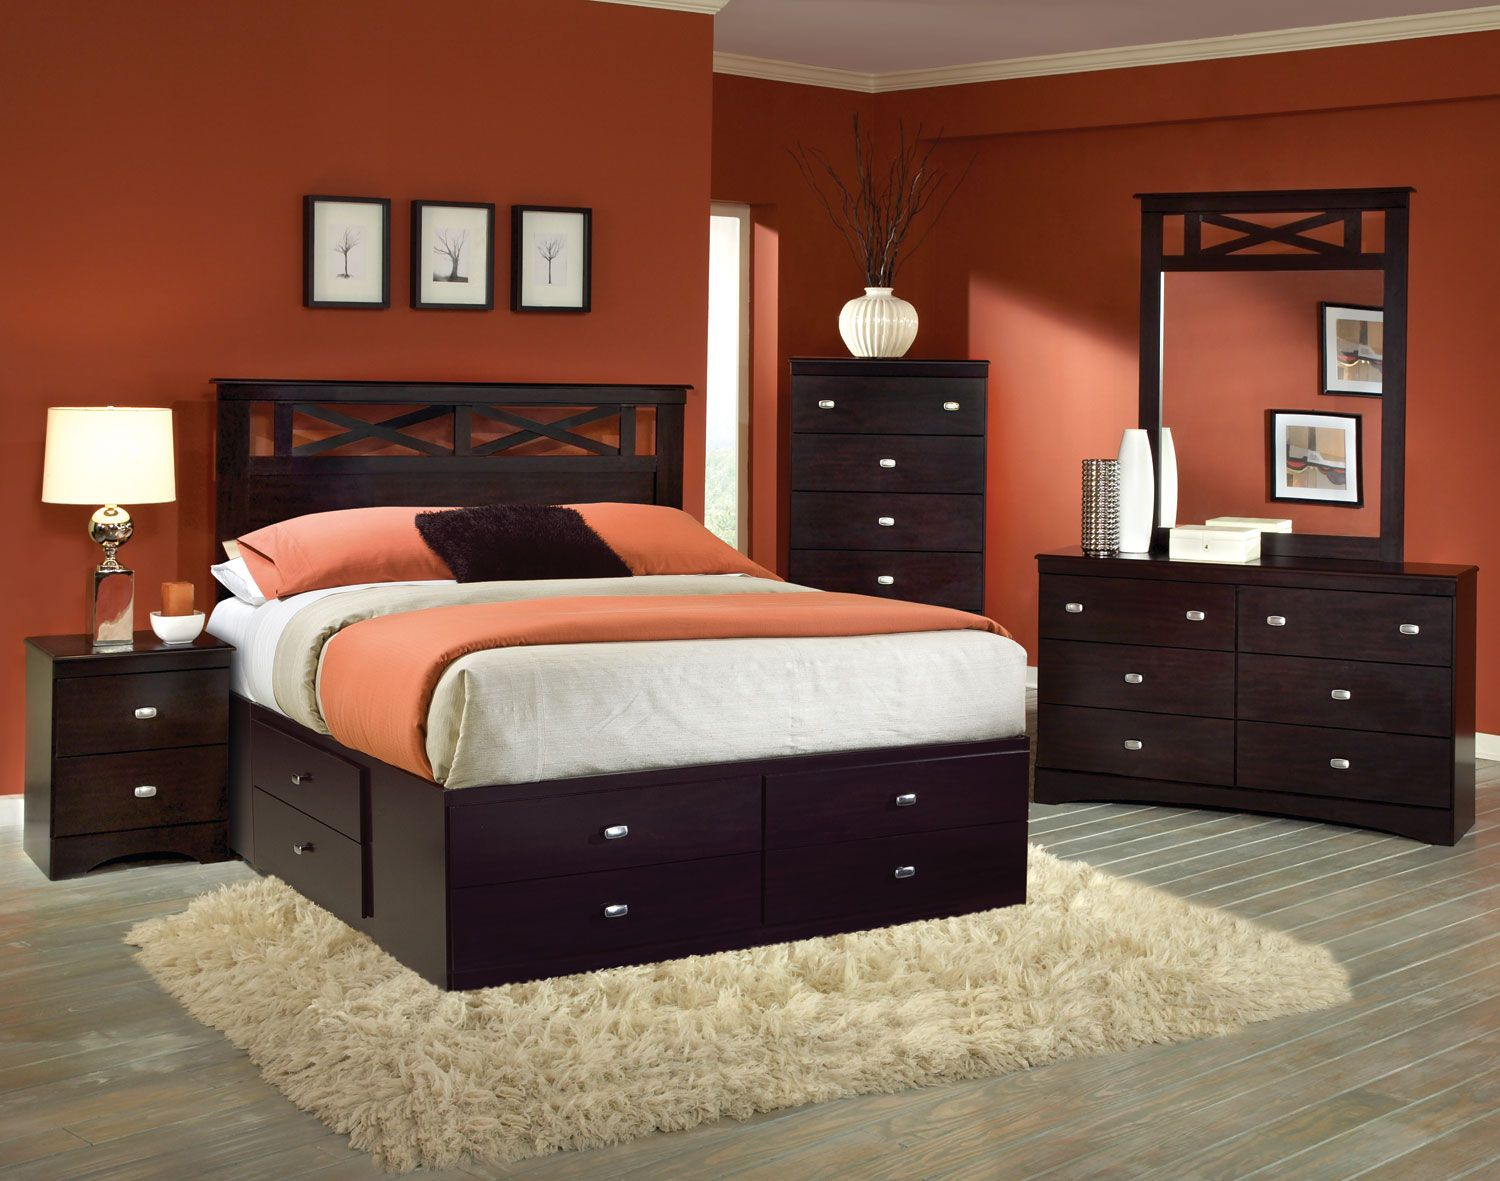 Kith furniture tyler panel storage bedroom set bedroom chic